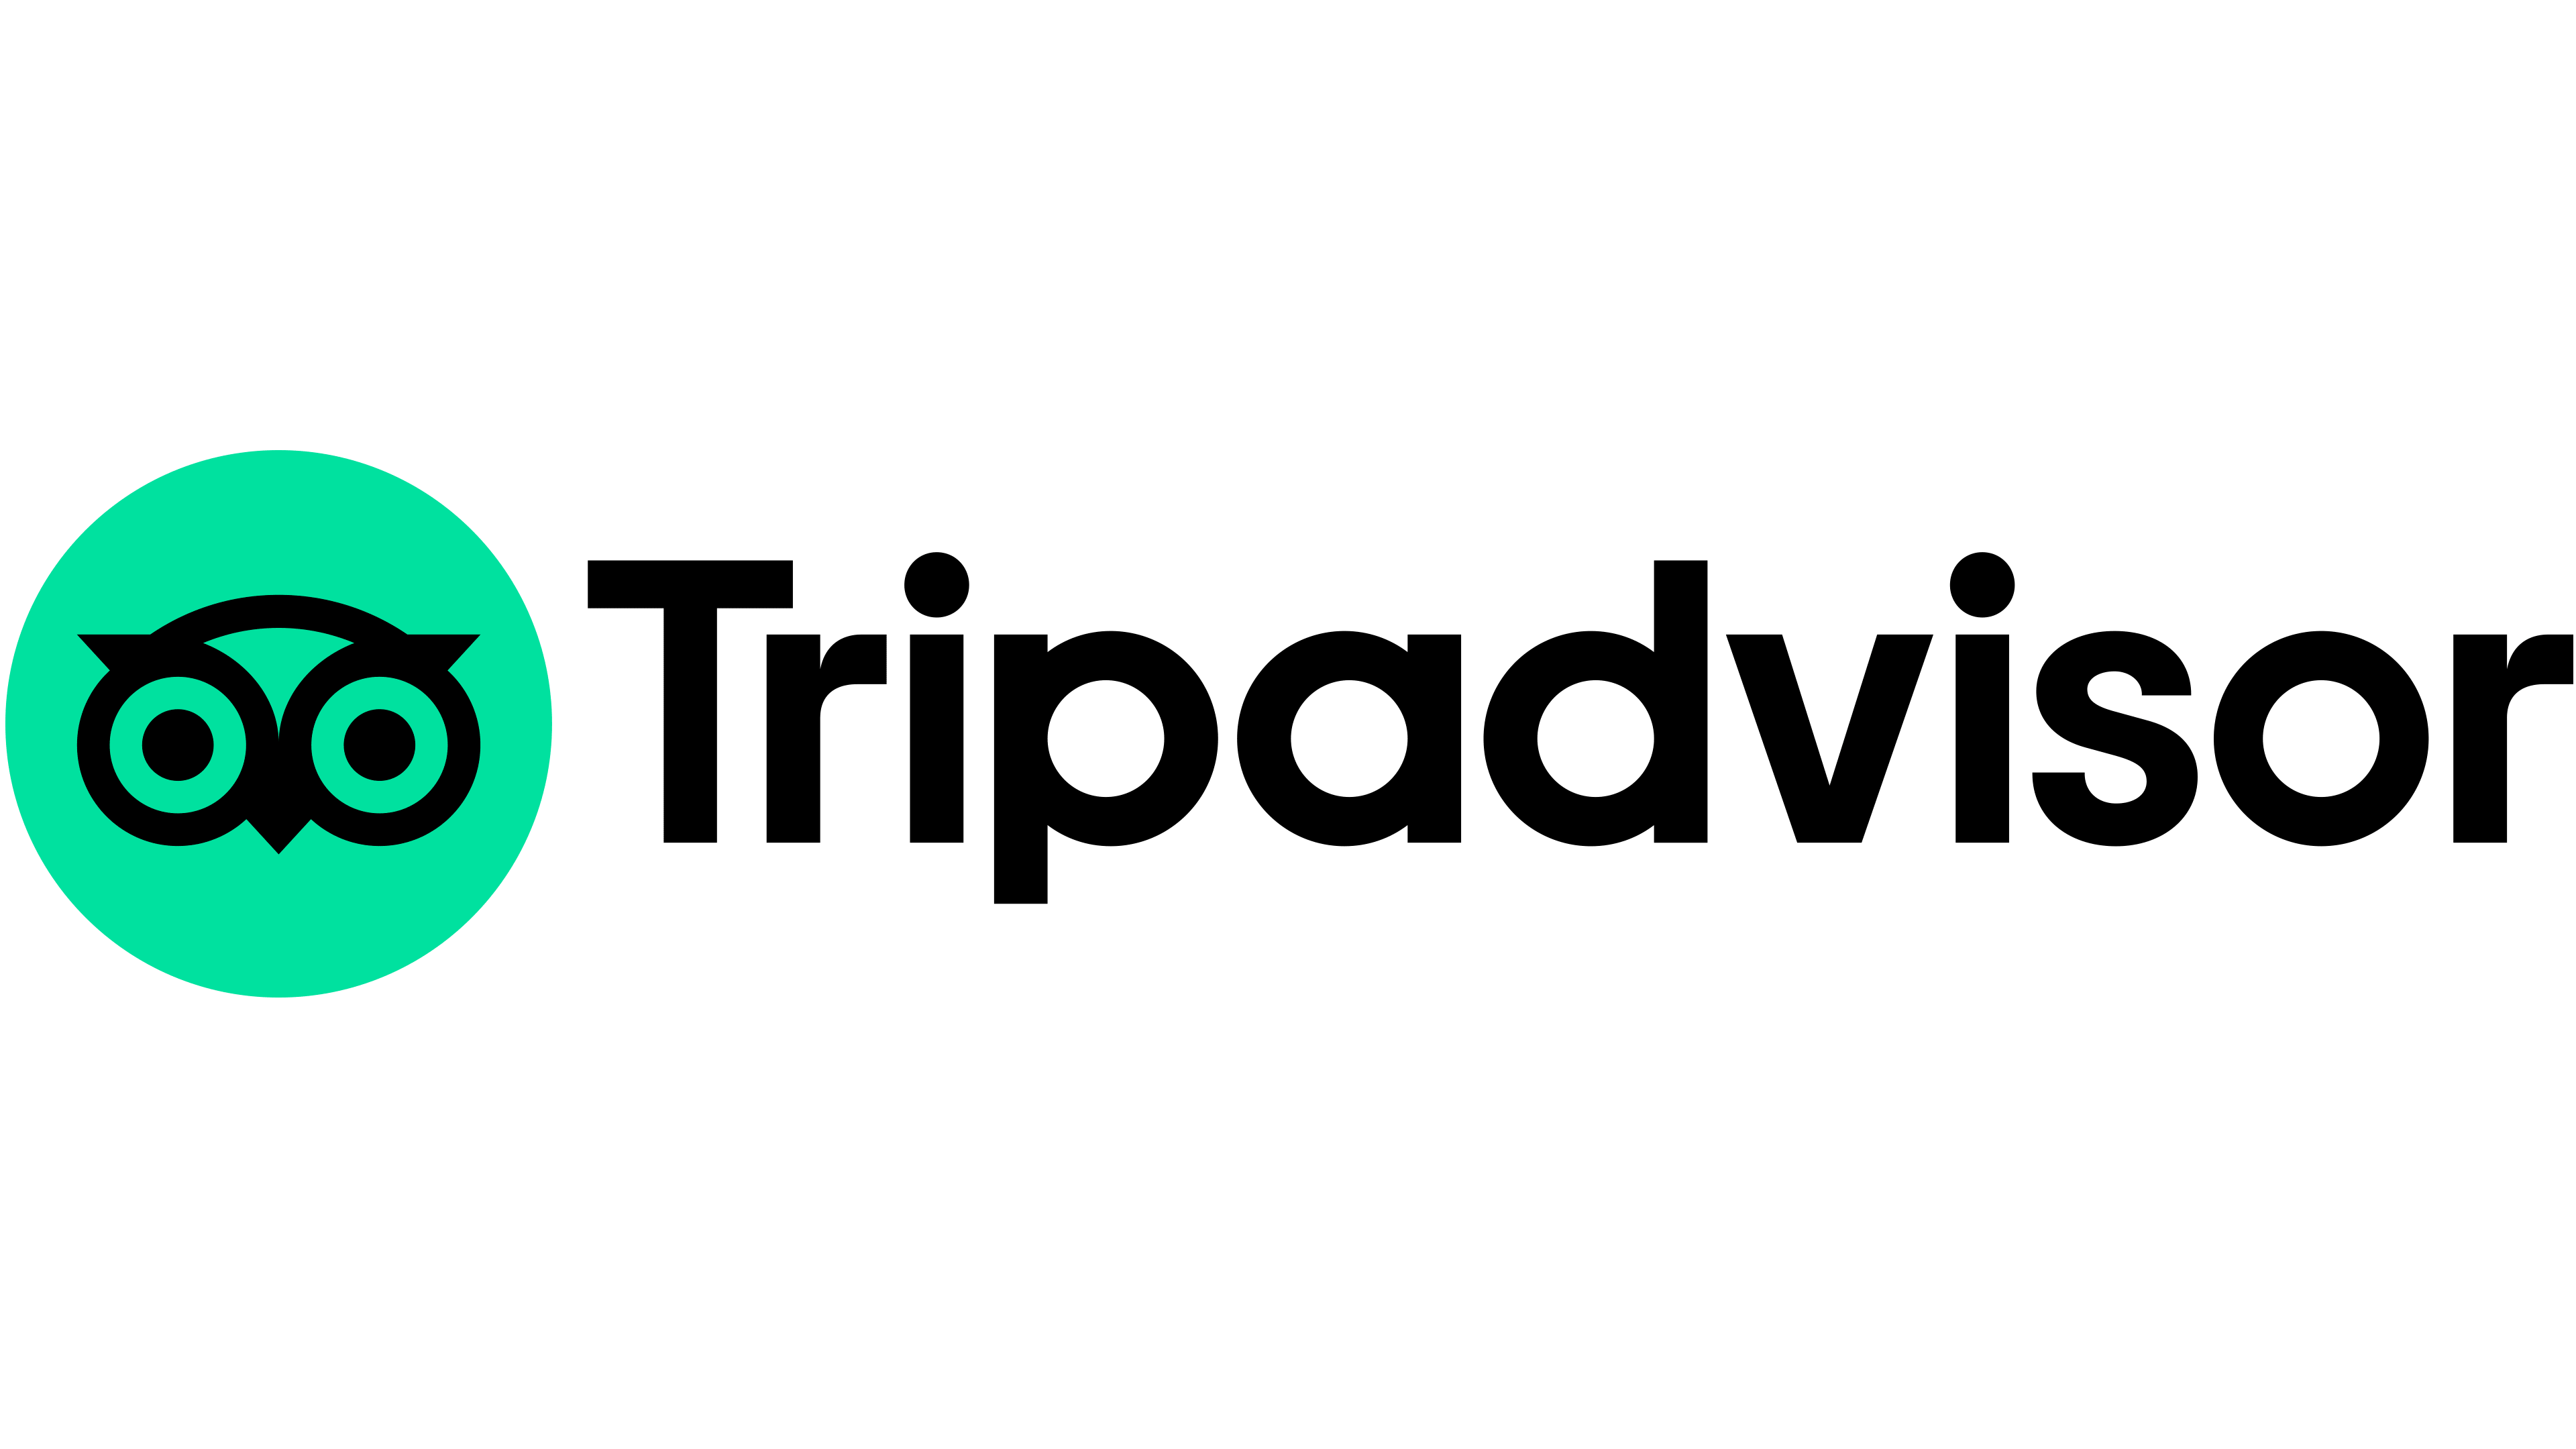 Leave a review on Tripadvisor  ibis, novotel, hilton, accor, ibis grand place, novotel grand place, hilton grand place, ibis brussels, novotel brussels, hilton brussels, warwick brussels, warwick bruxelles, ibis bruxelles, novotel bruxelles